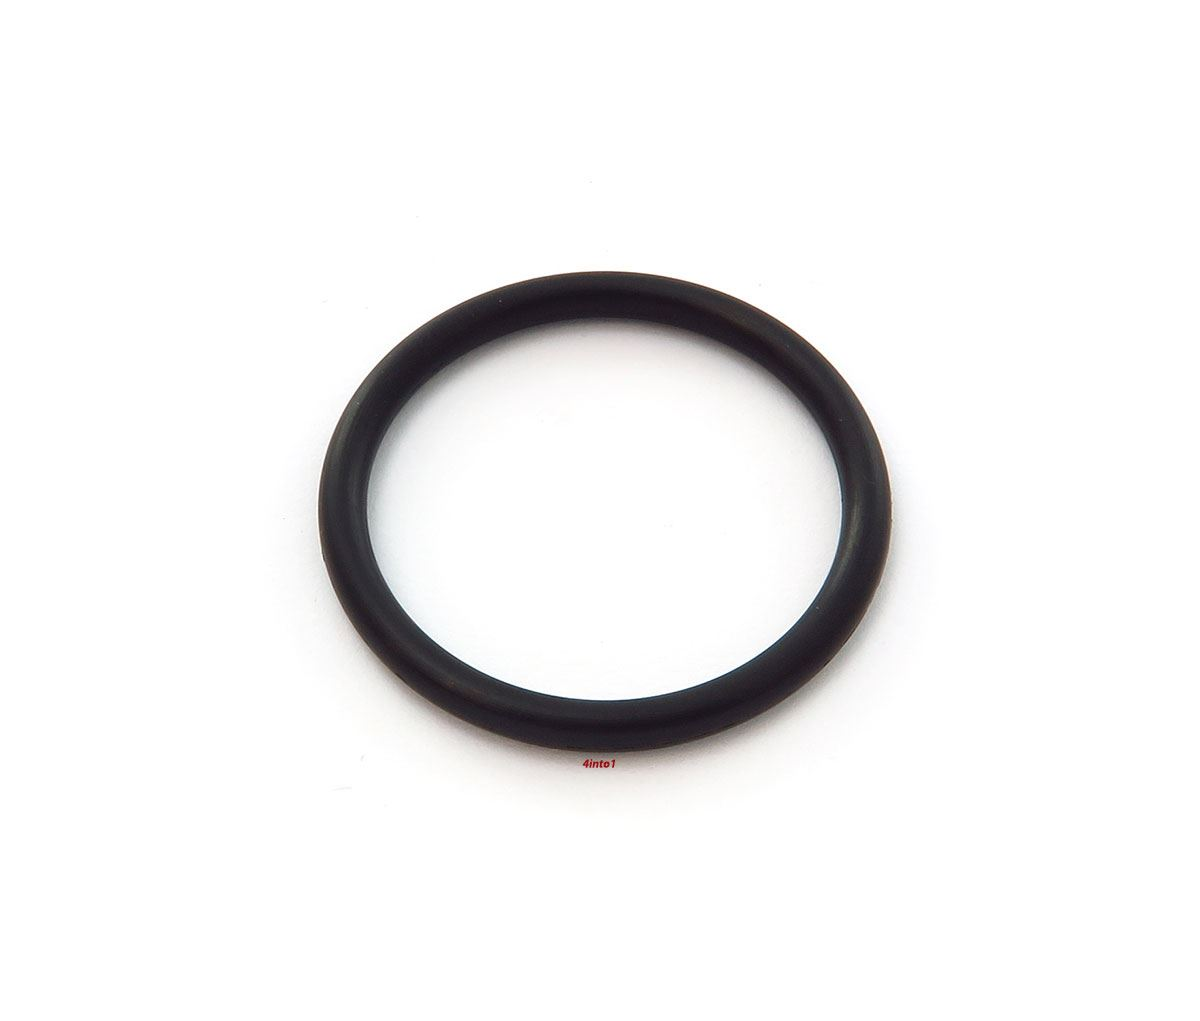 genuine honda id tappet cover o ring 91302 001 020 ebay. Black Bedroom Furniture Sets. Home Design Ideas